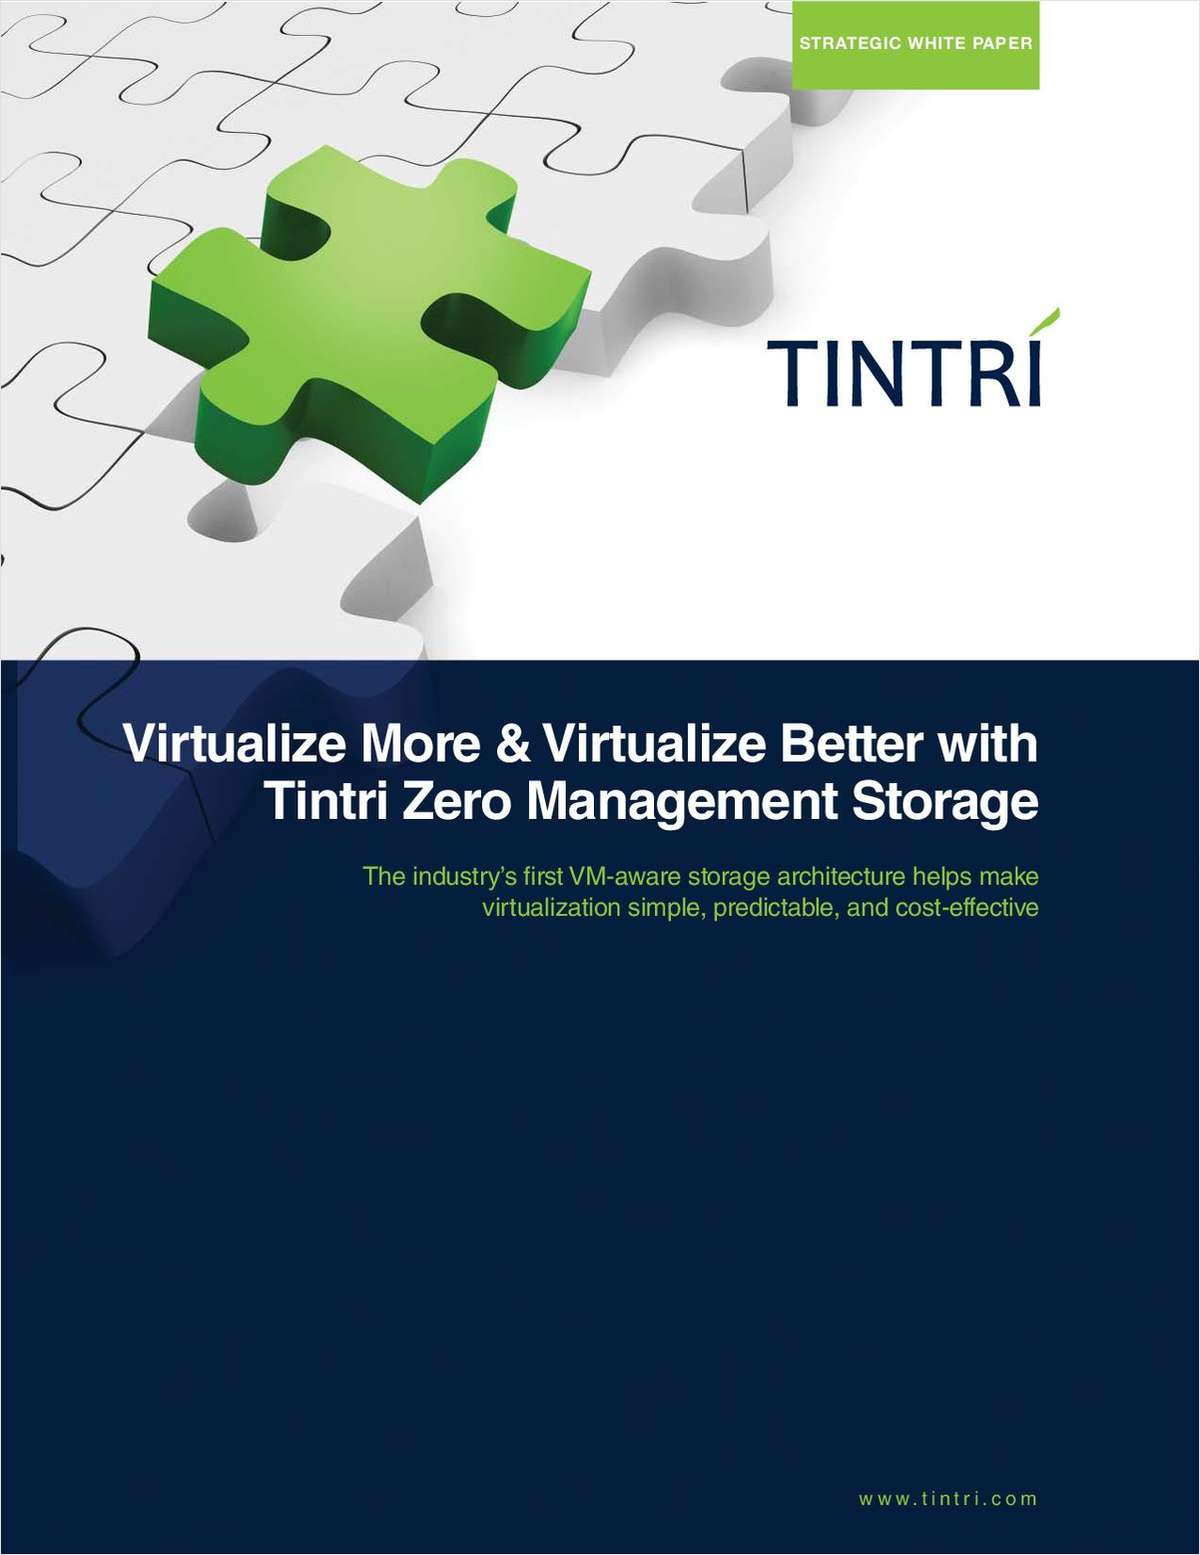 Virtualize More & Virtualize Better with Tintri Zero Management Storage